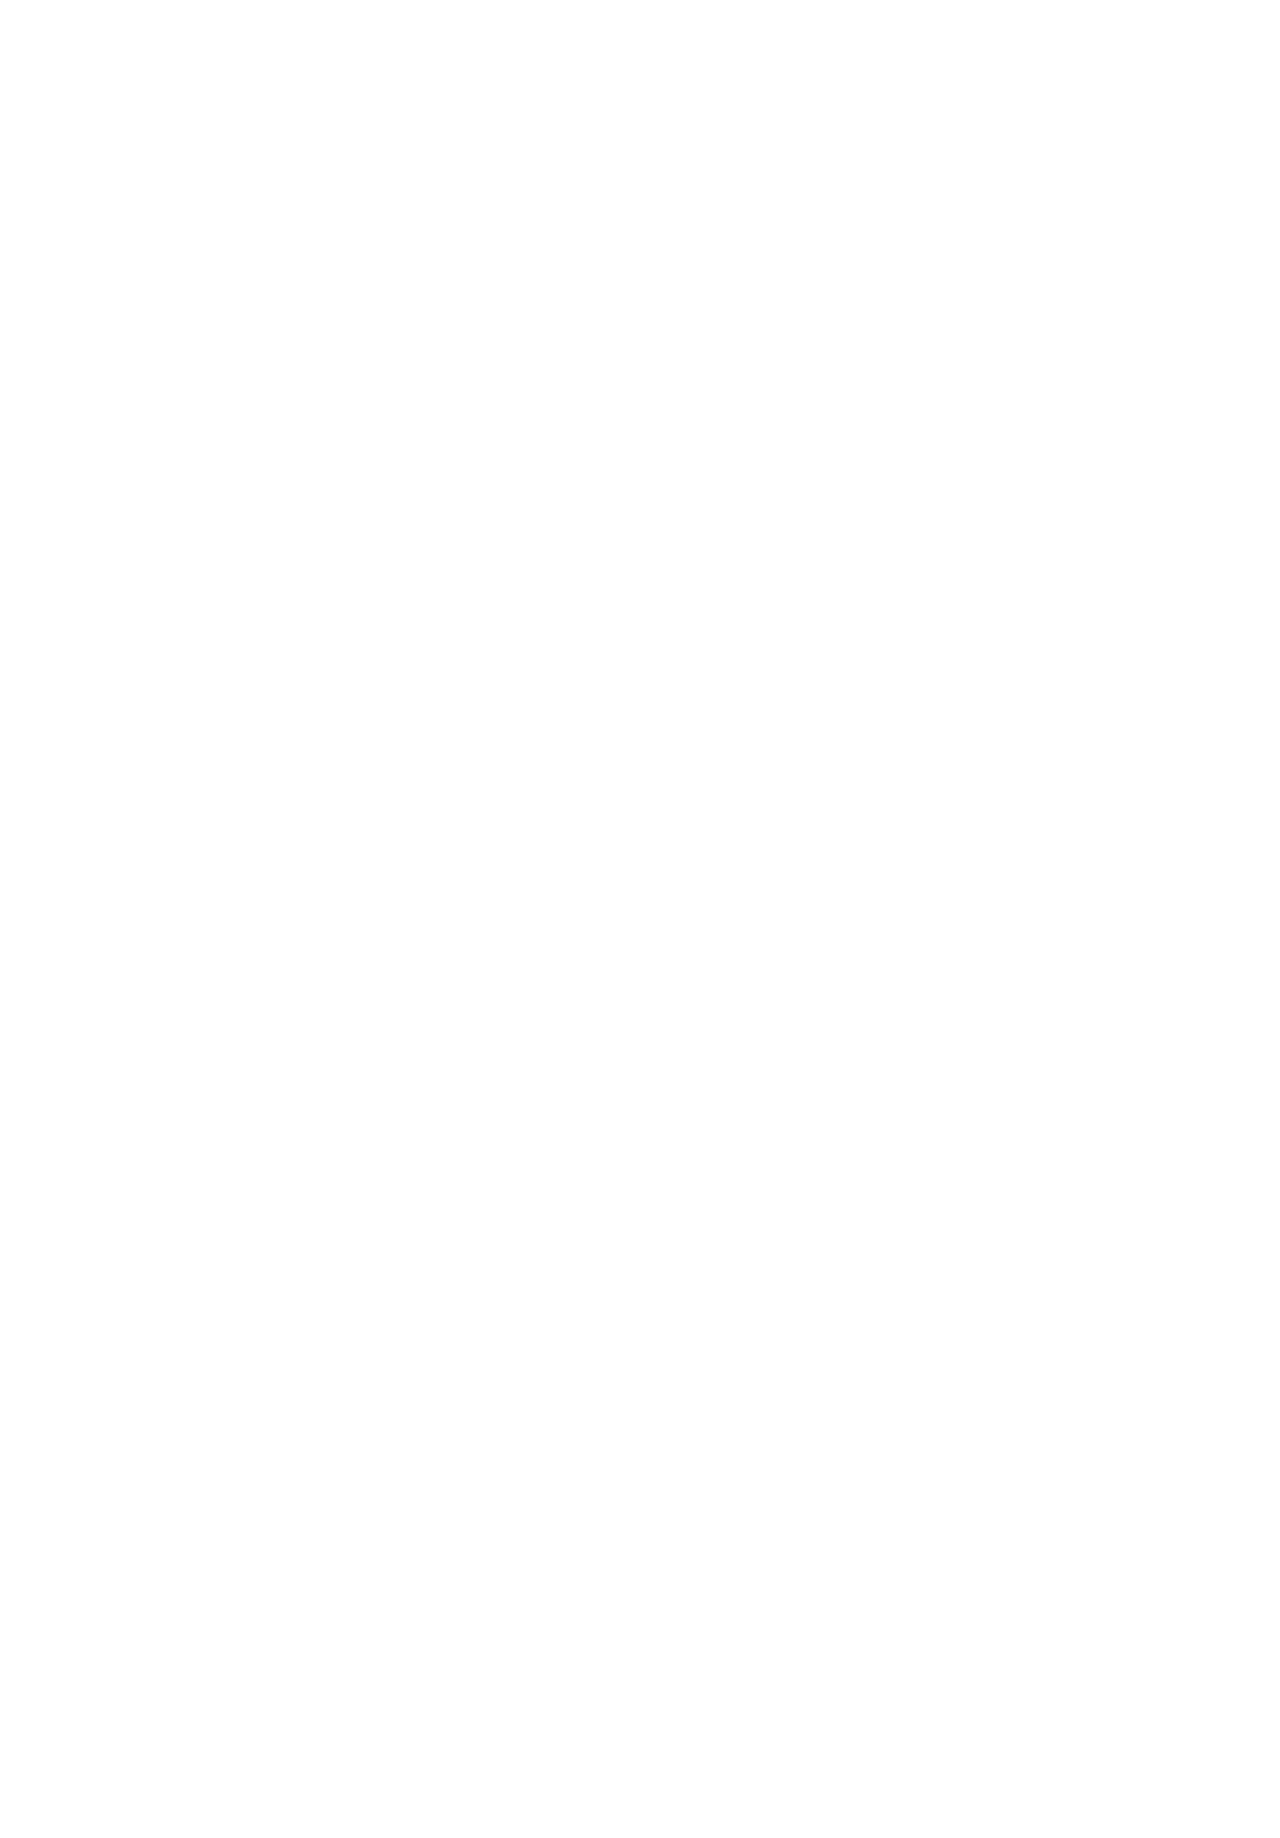 https://digital.tessmann.it/mediaArchive/media/image/Page/DS/1952/18_07_1952/DS_1952_07_18_1_object_2572258.png?auth=ad84b973095e14f85123fdcd4e115f01